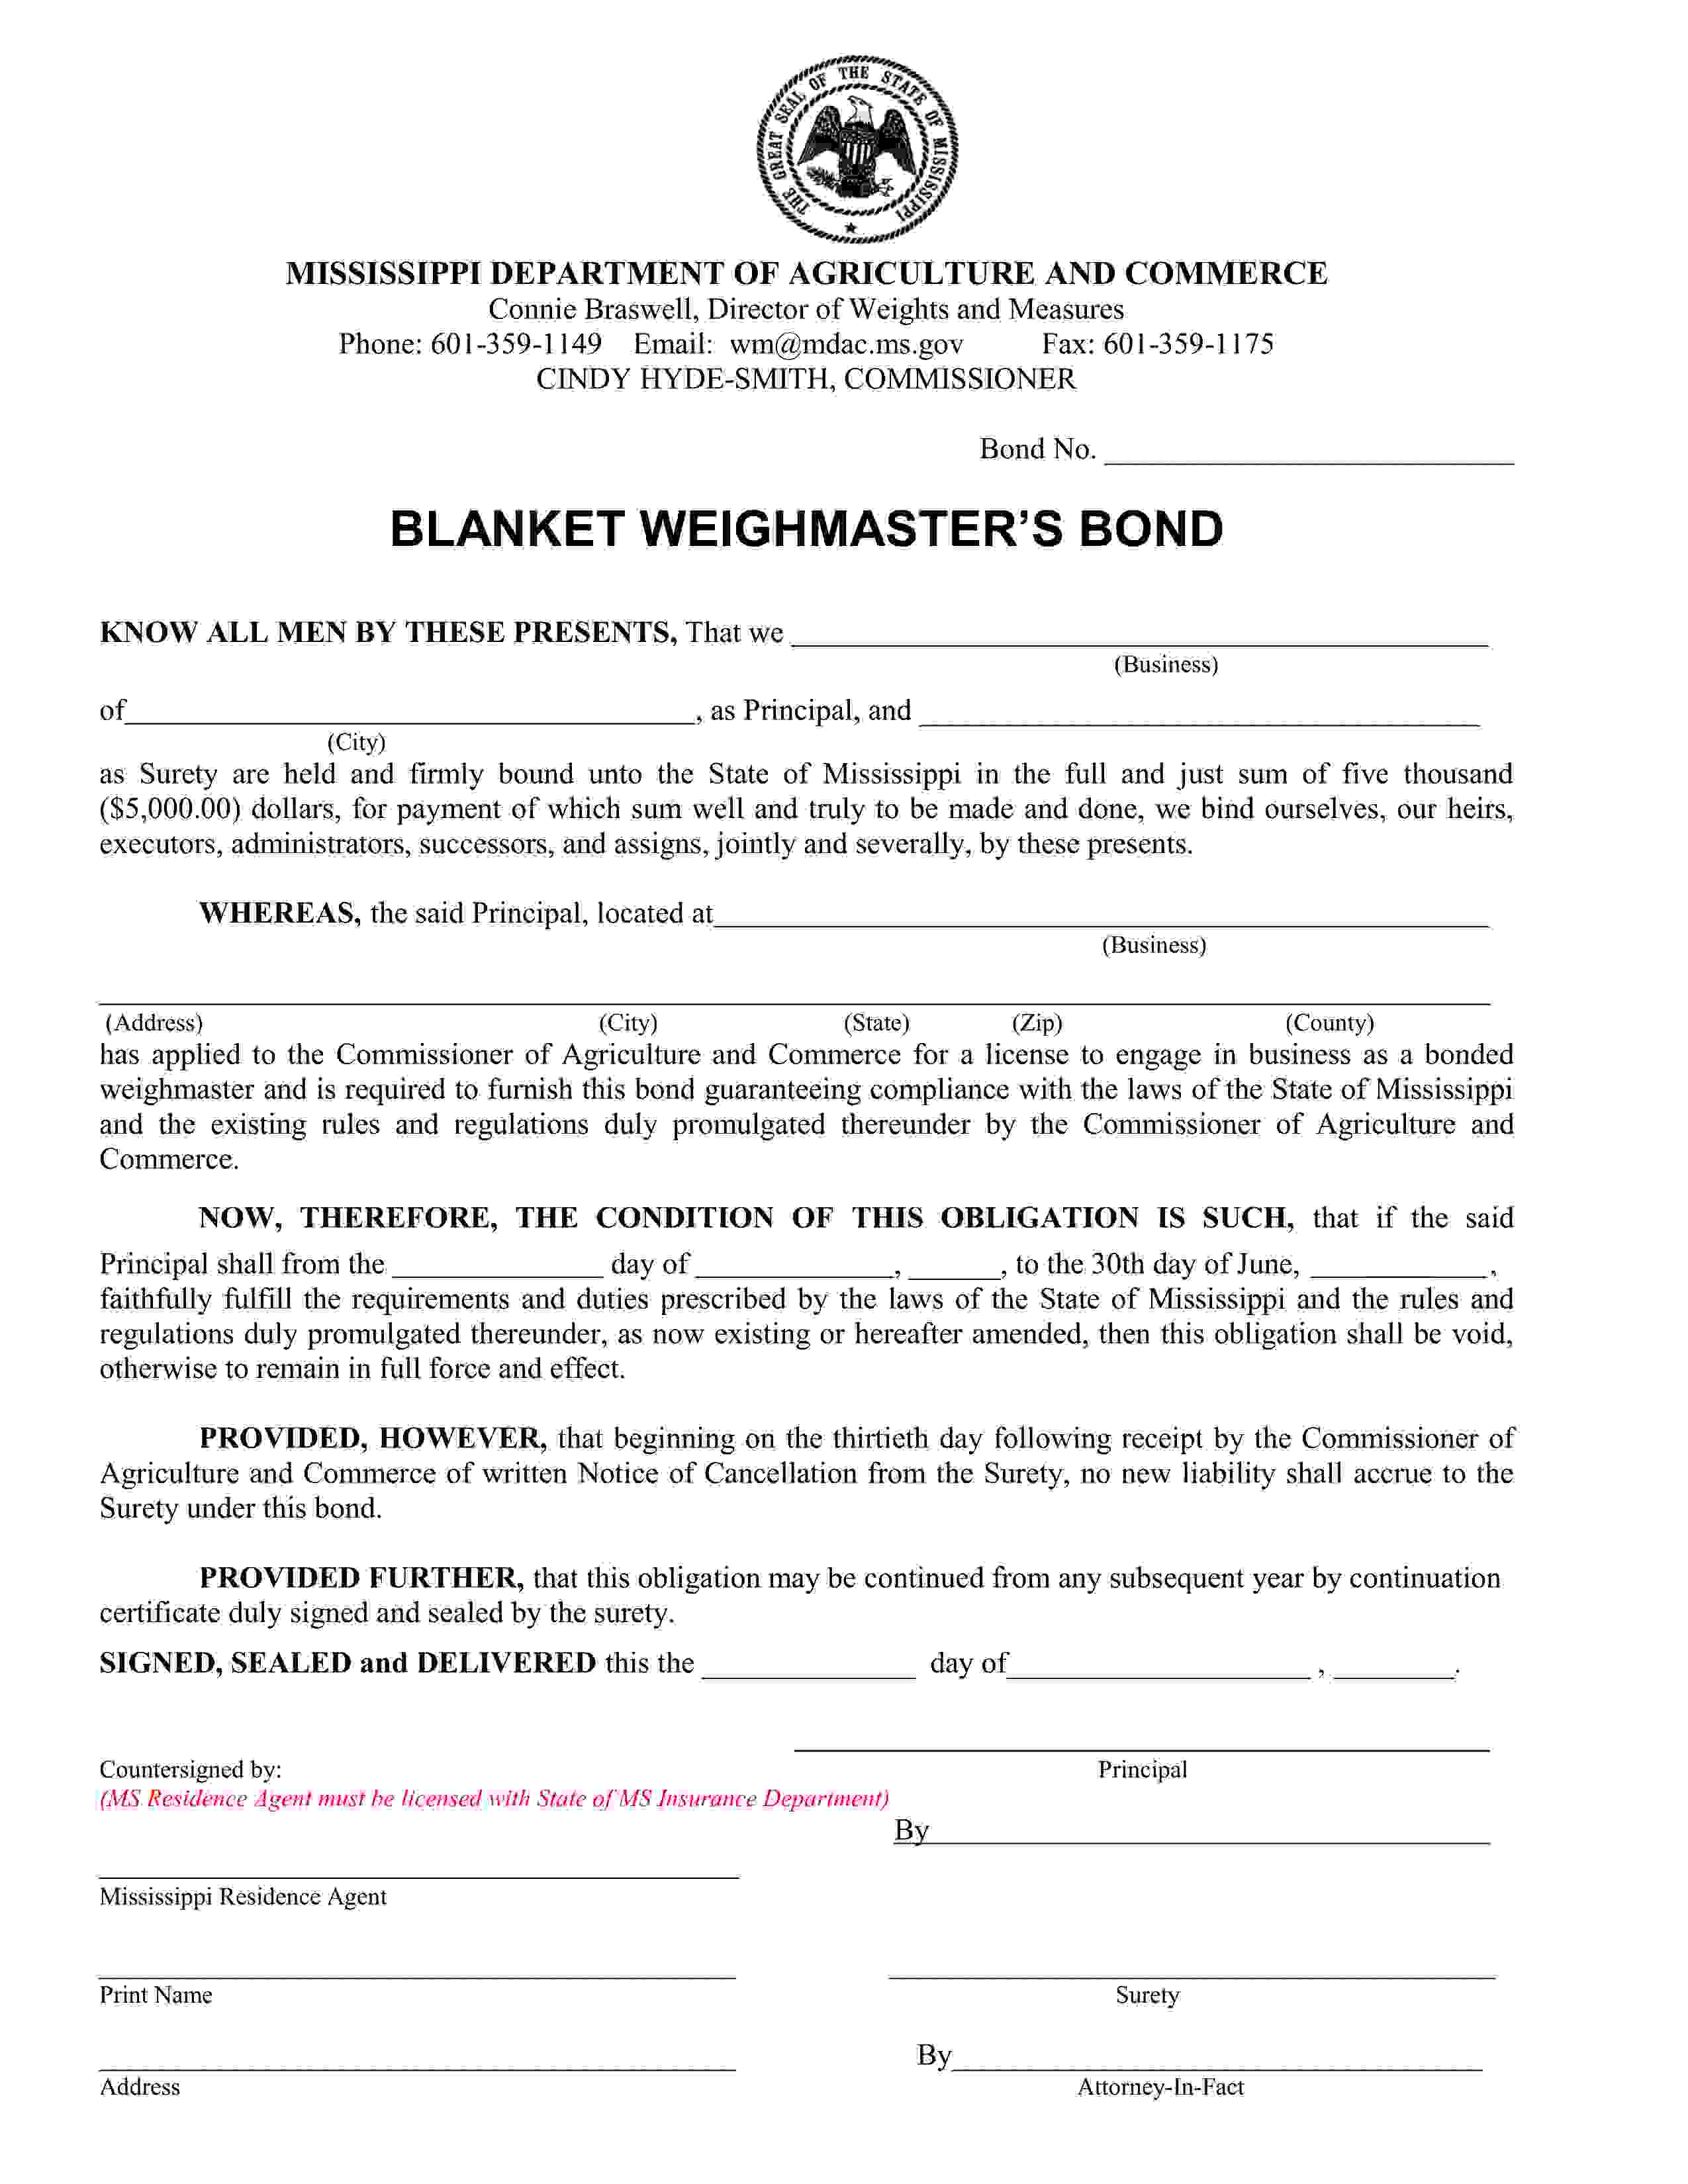 Mississippi Department of Agriculture and Commerce Blanket Weighmaster Bond sample image